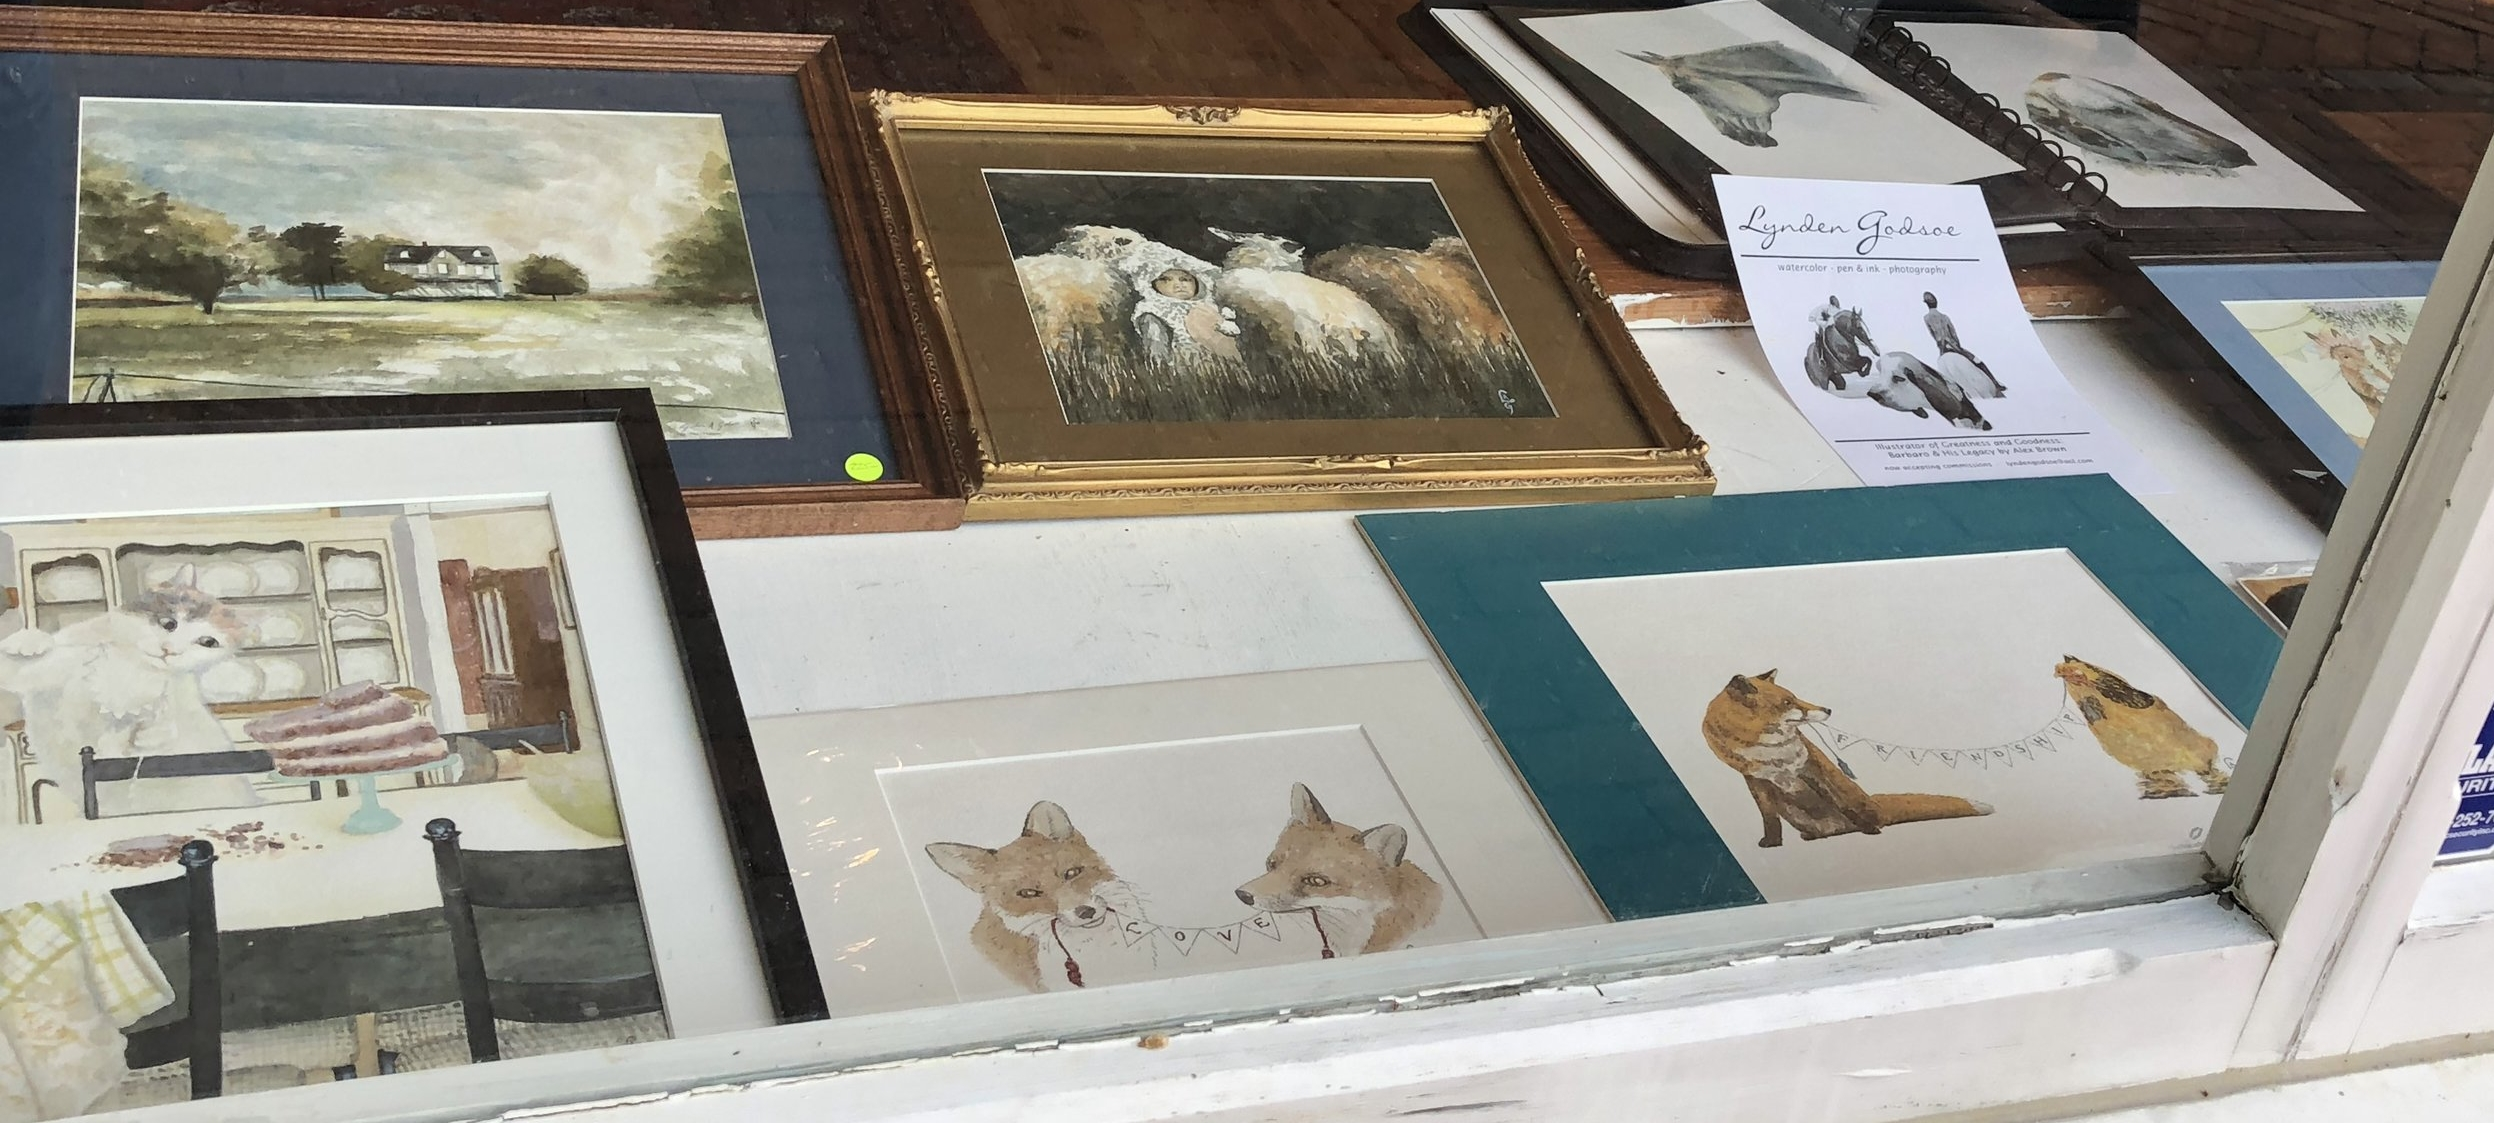 oRIGINAL WATERCOLORS BY CHESTERTOWN ARTIST LYNDEN GODSOE. EQUINE AND DOMESTIC PET PORTRAITS OF THE HIGHEST CALIBER AVAILABLE ON COMMISSION.